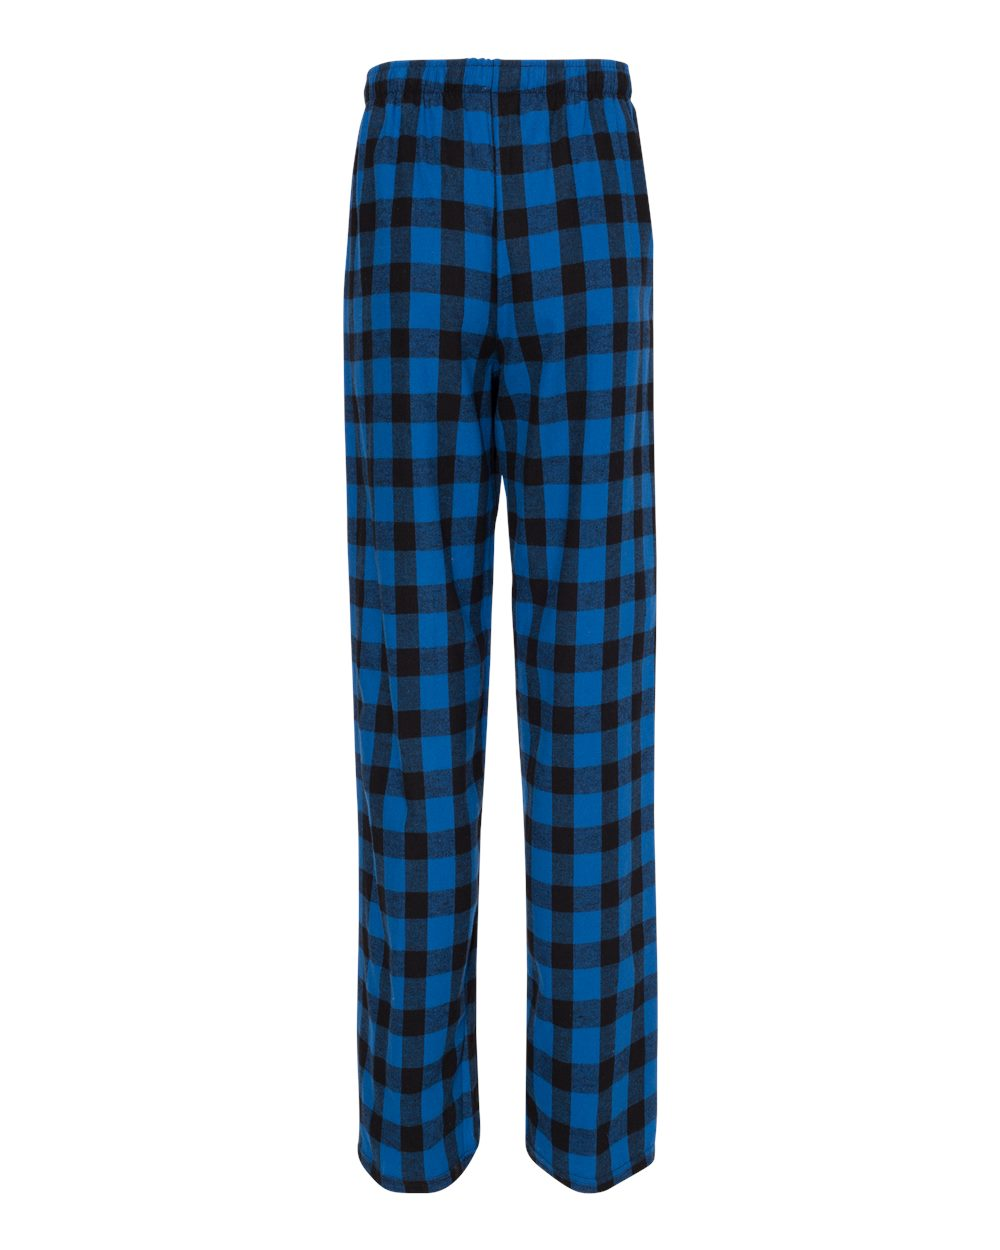 Boxercraft-Unisex-Flannel-Pants-With-Pockets-Pajama-Pants-F20-up-to-2XL thumbnail 49